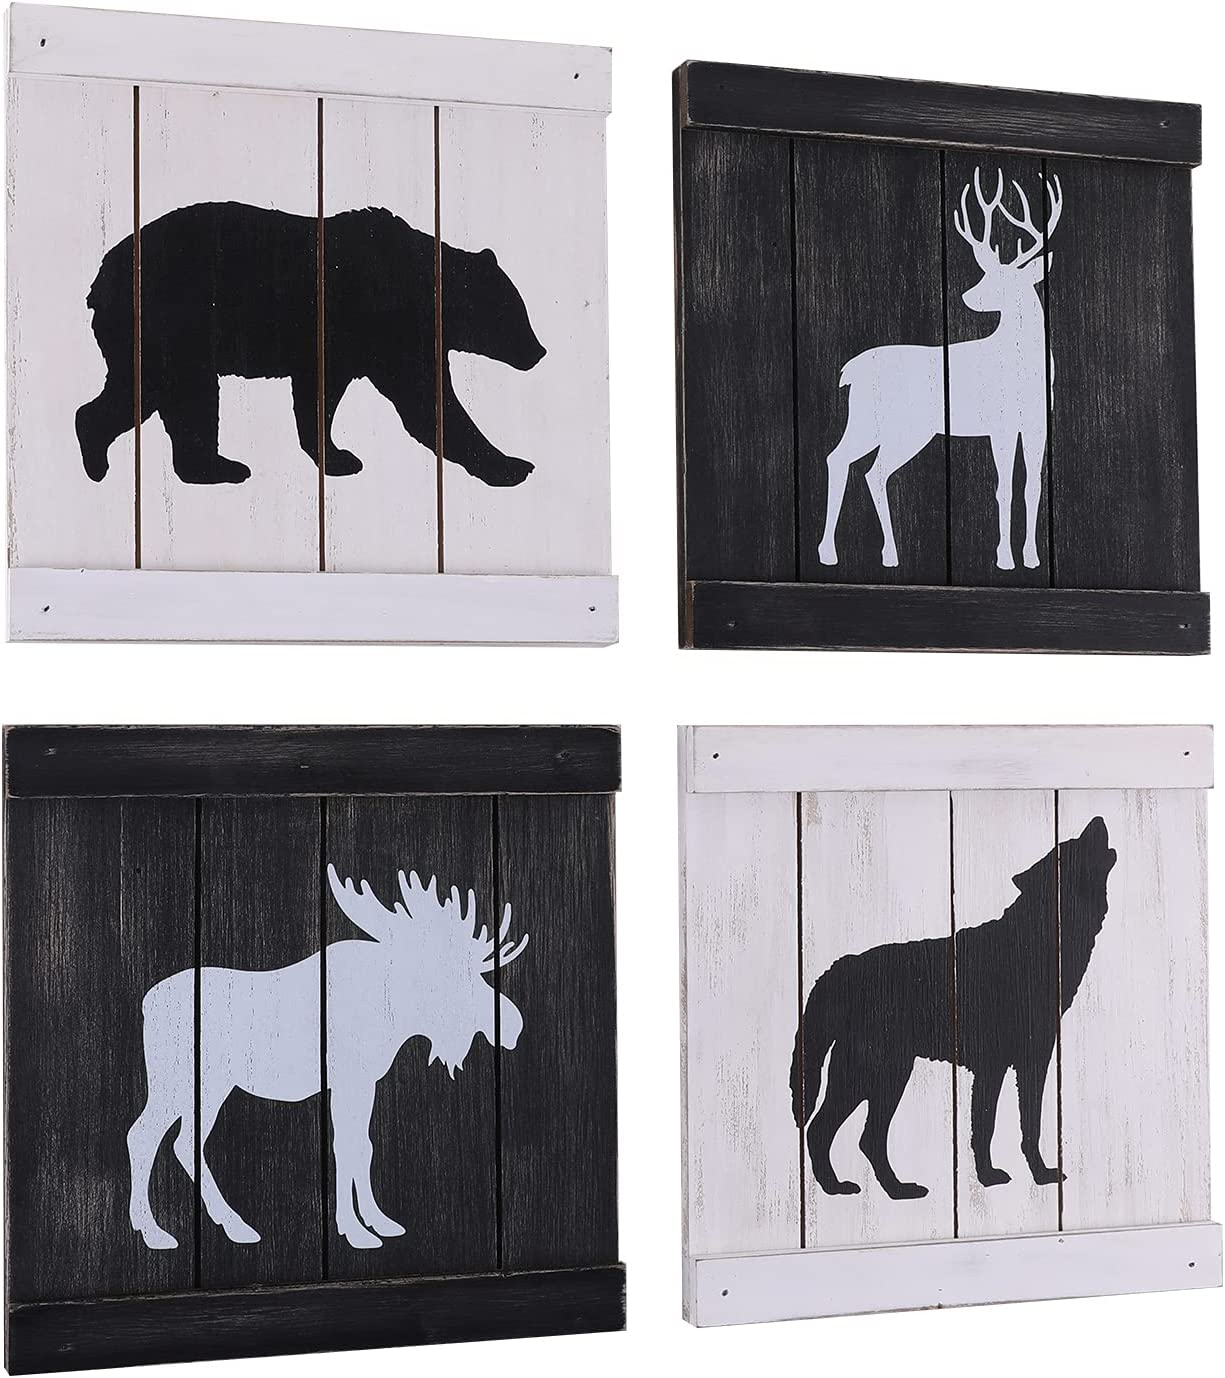 Rustic Cabin Decor Clearance, Wolf Deer Moose Bear Decorations for Home, Woodland Animal Wall Decor, Cabin Lodge Wall Art Decor, Hunting Decor for Bathroom Bedroom, Set of 4